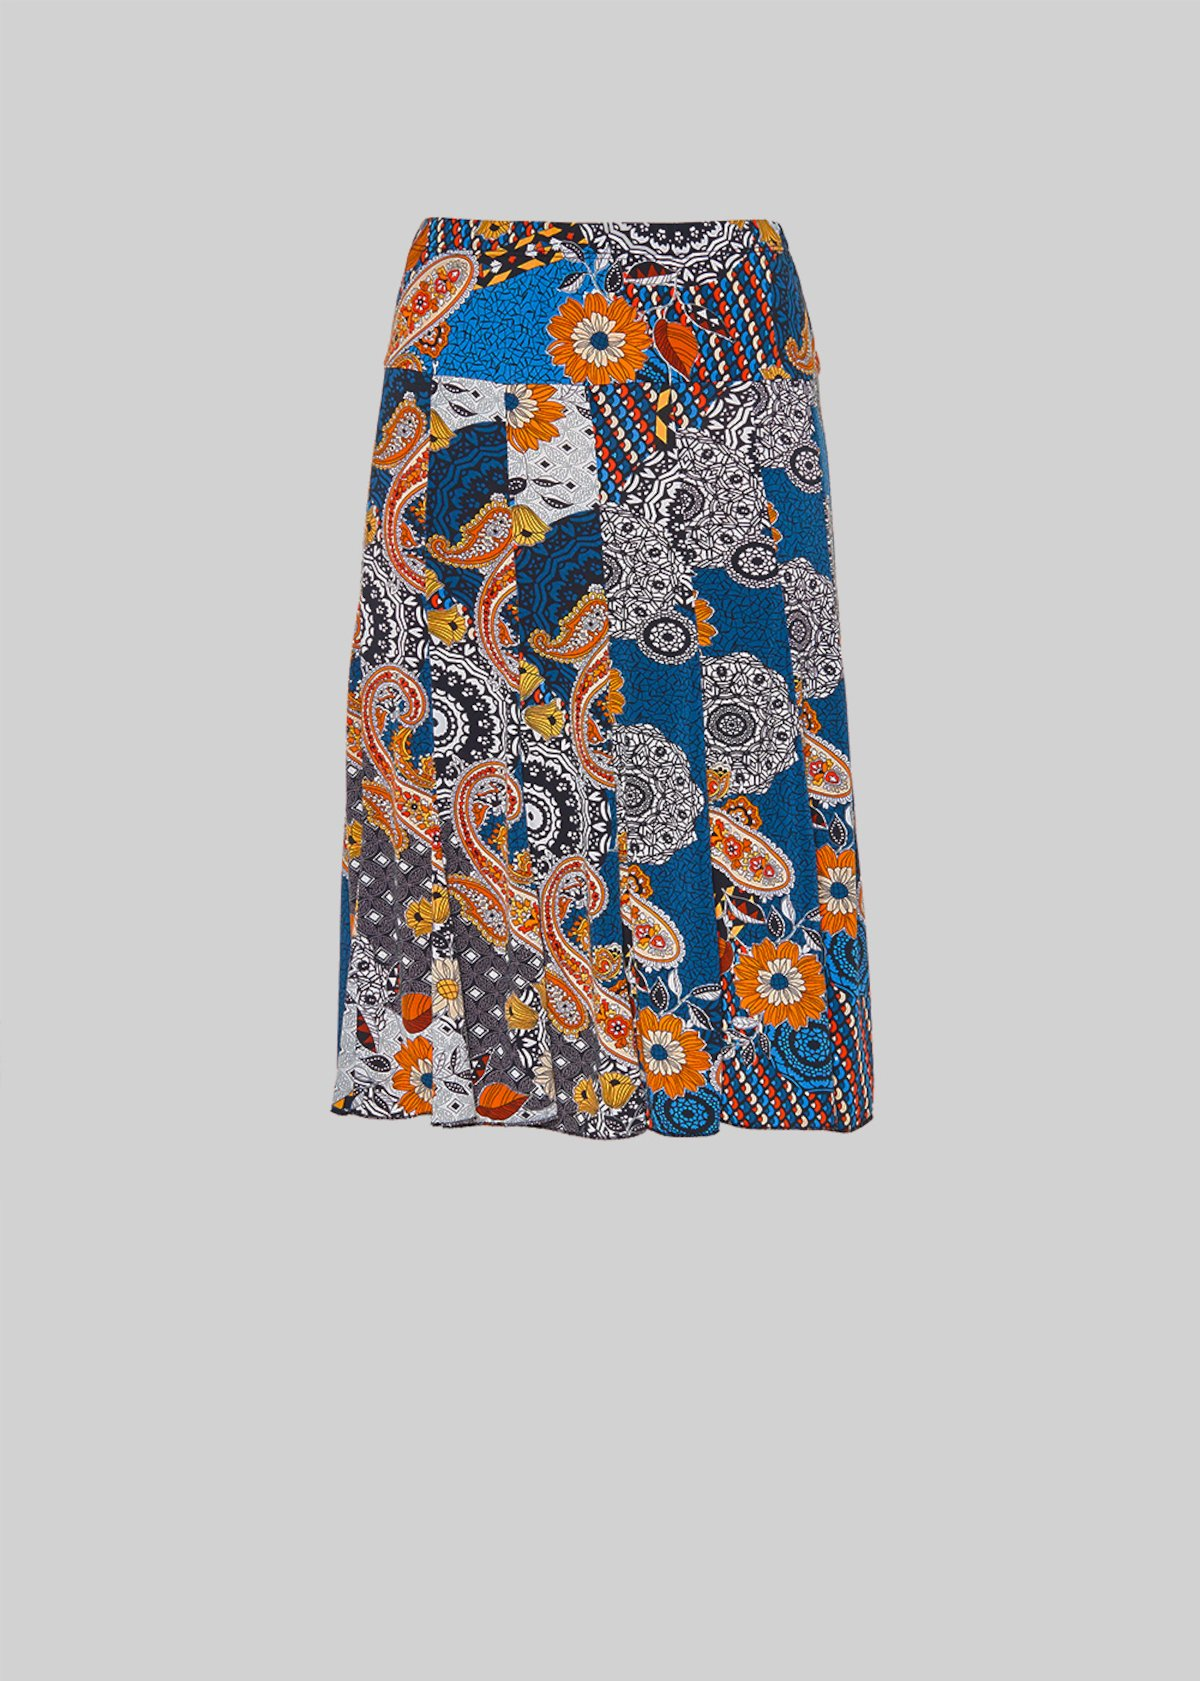 All over printed Gabry jersey skirt